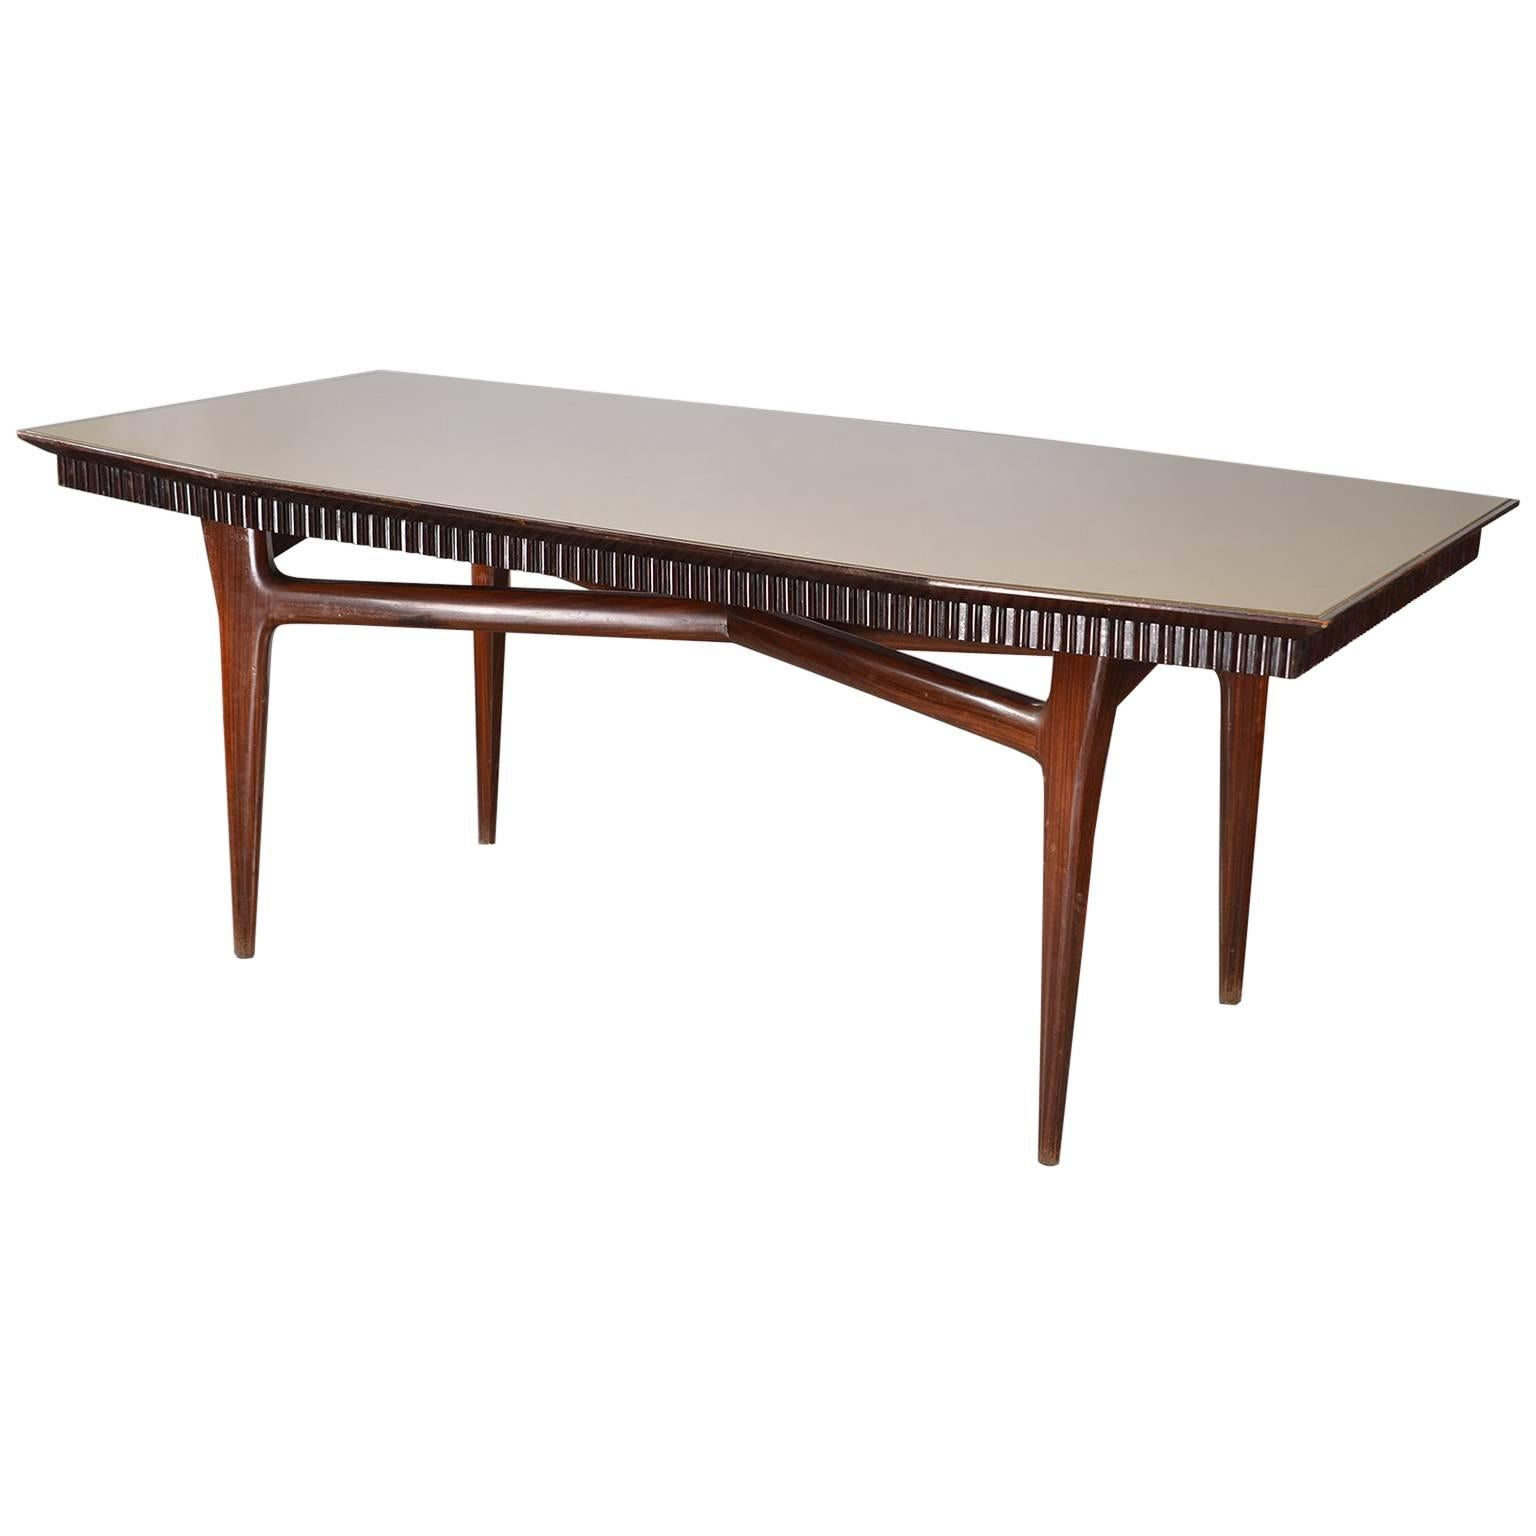 Midcentury Italian Dining Table with Green Glass Top and Fluted Edge